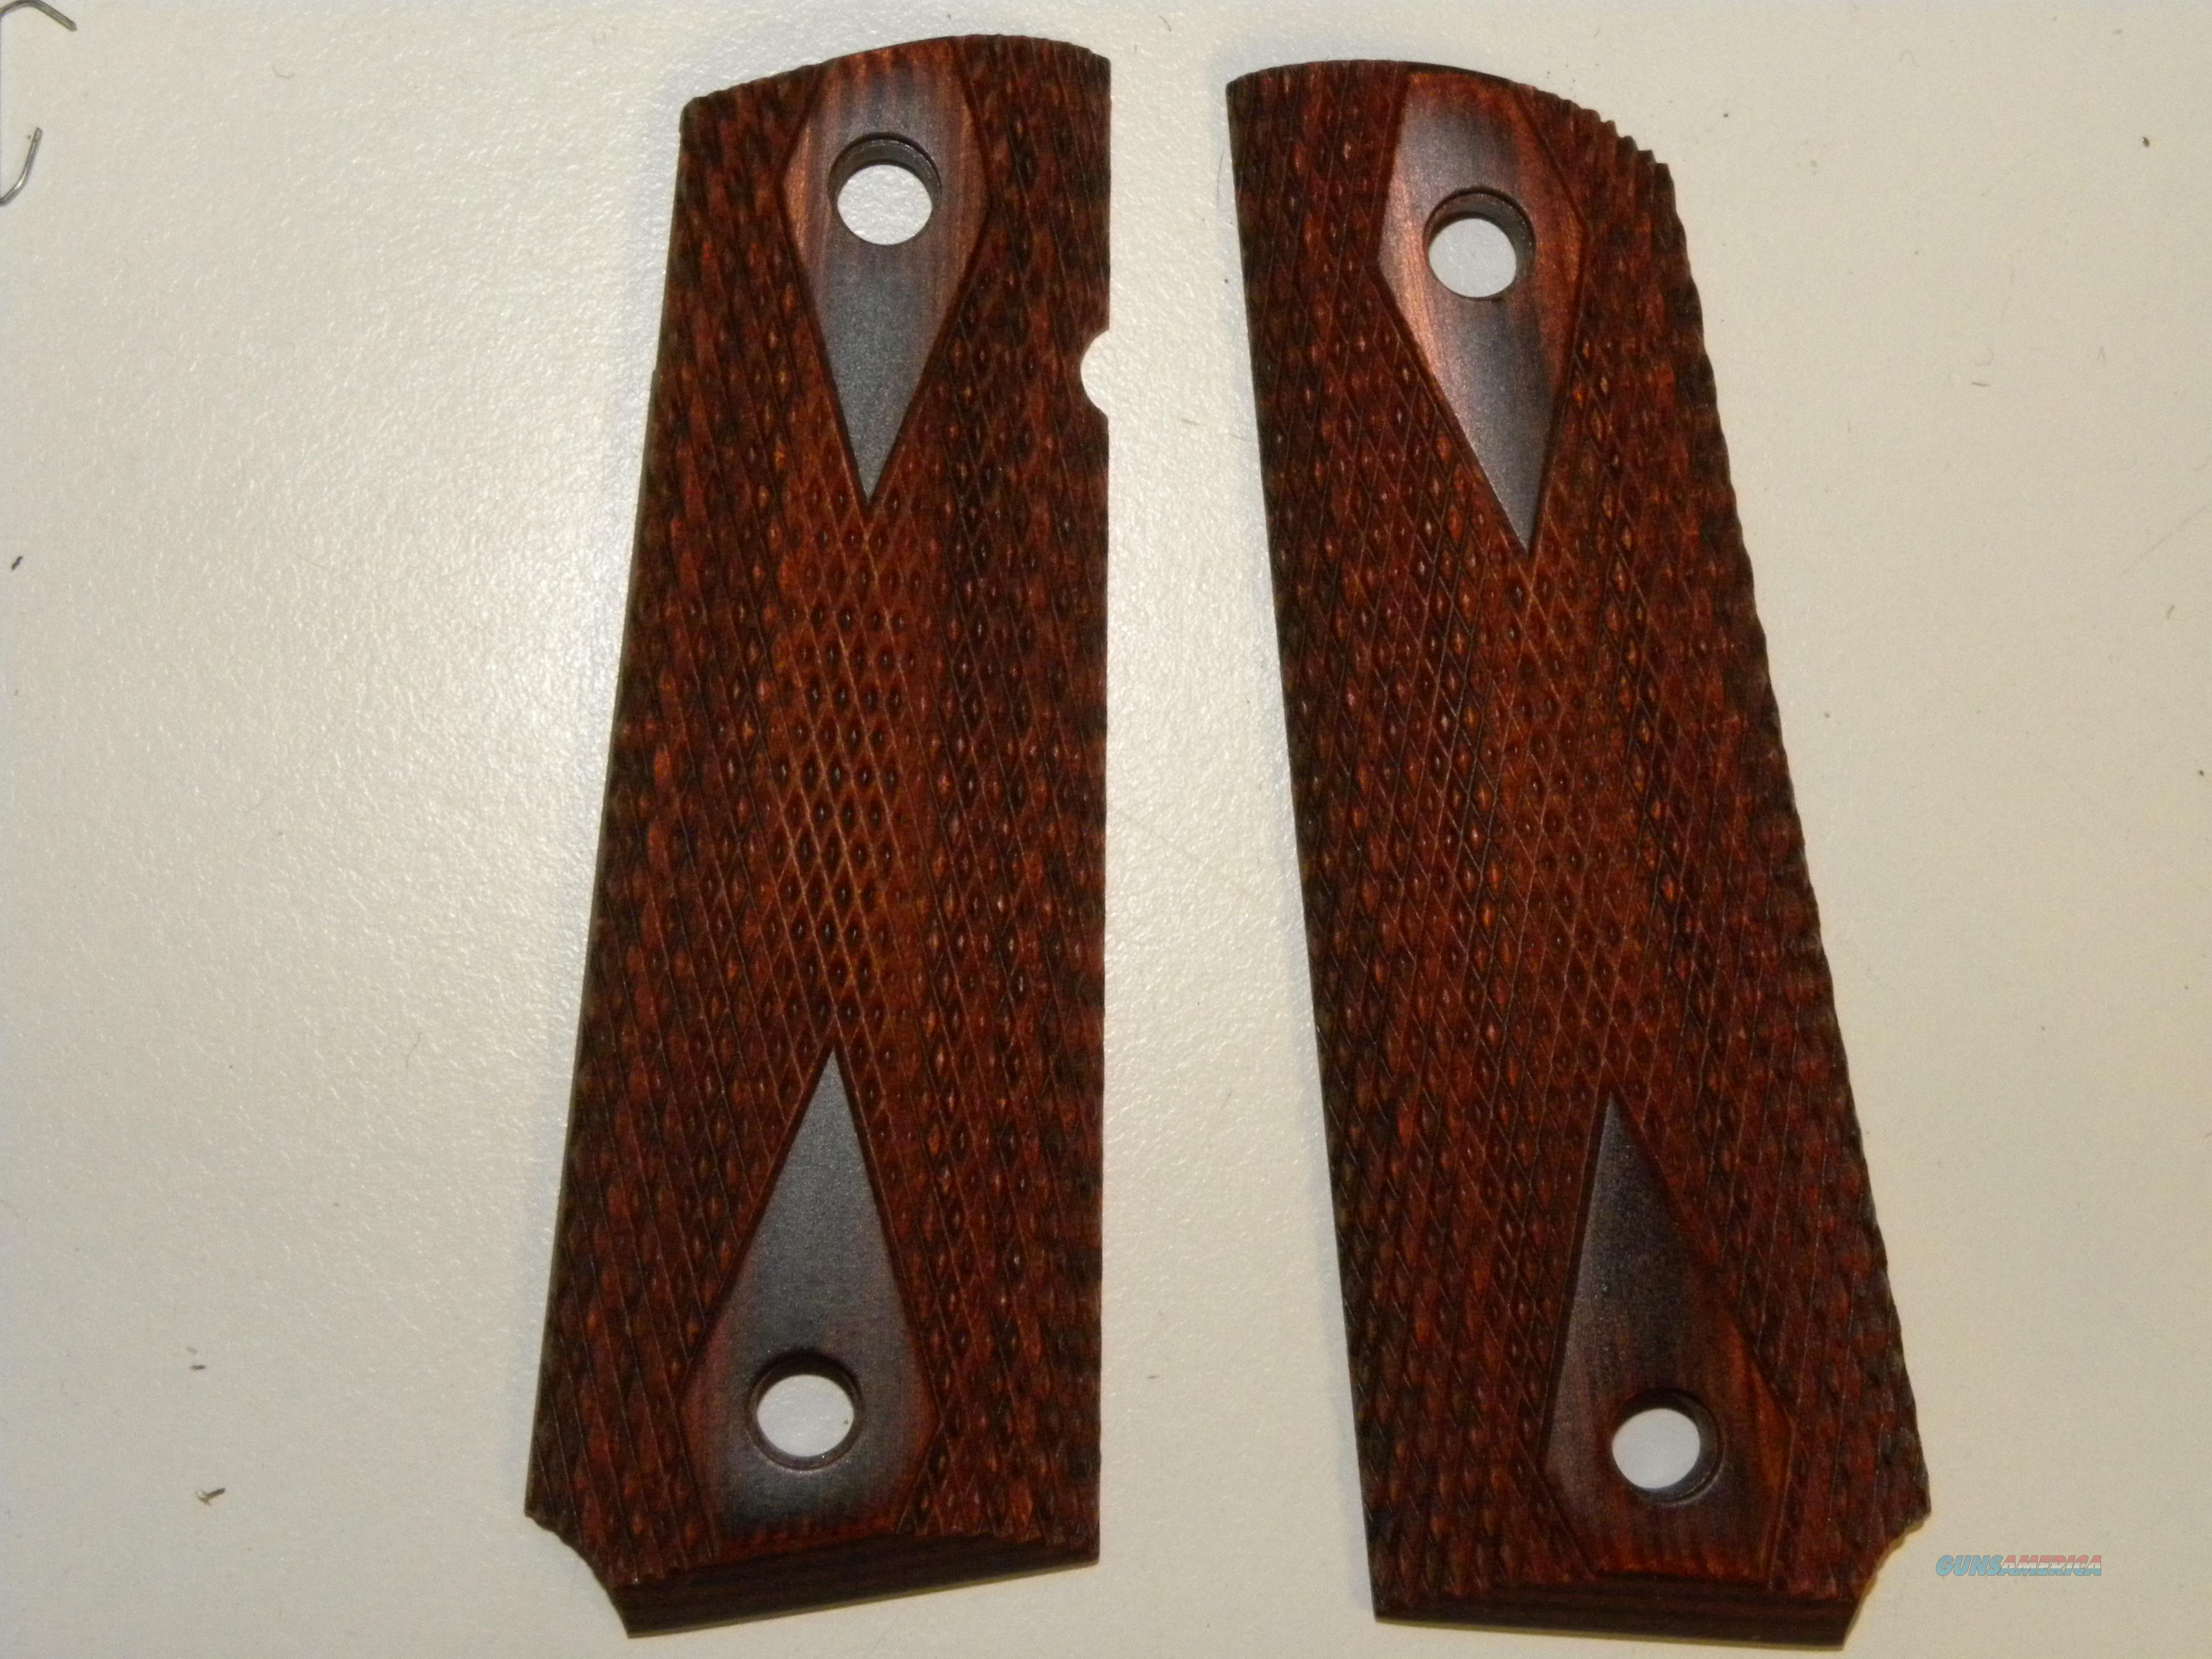 1911 Rosewood Grips   Non-Guns > Gunstocks, Grips & Wood